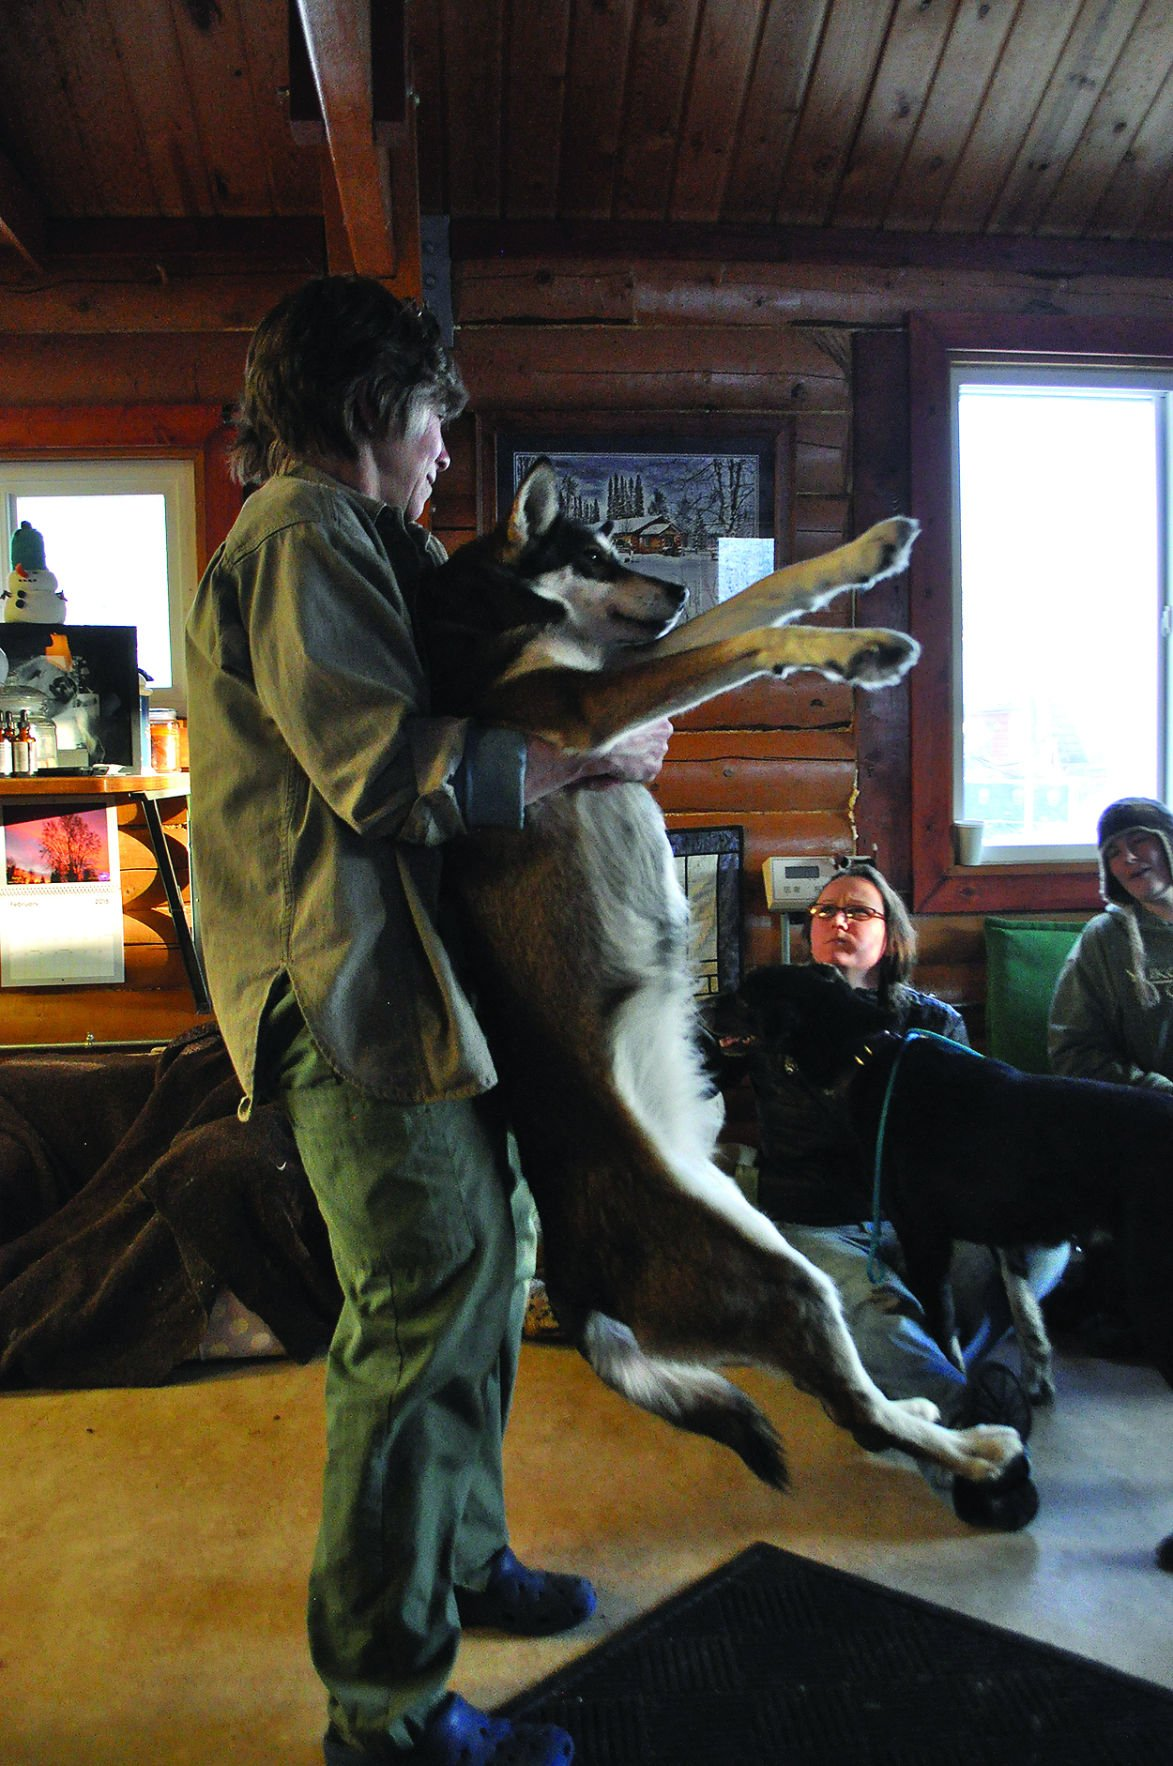 Canine chiropractic